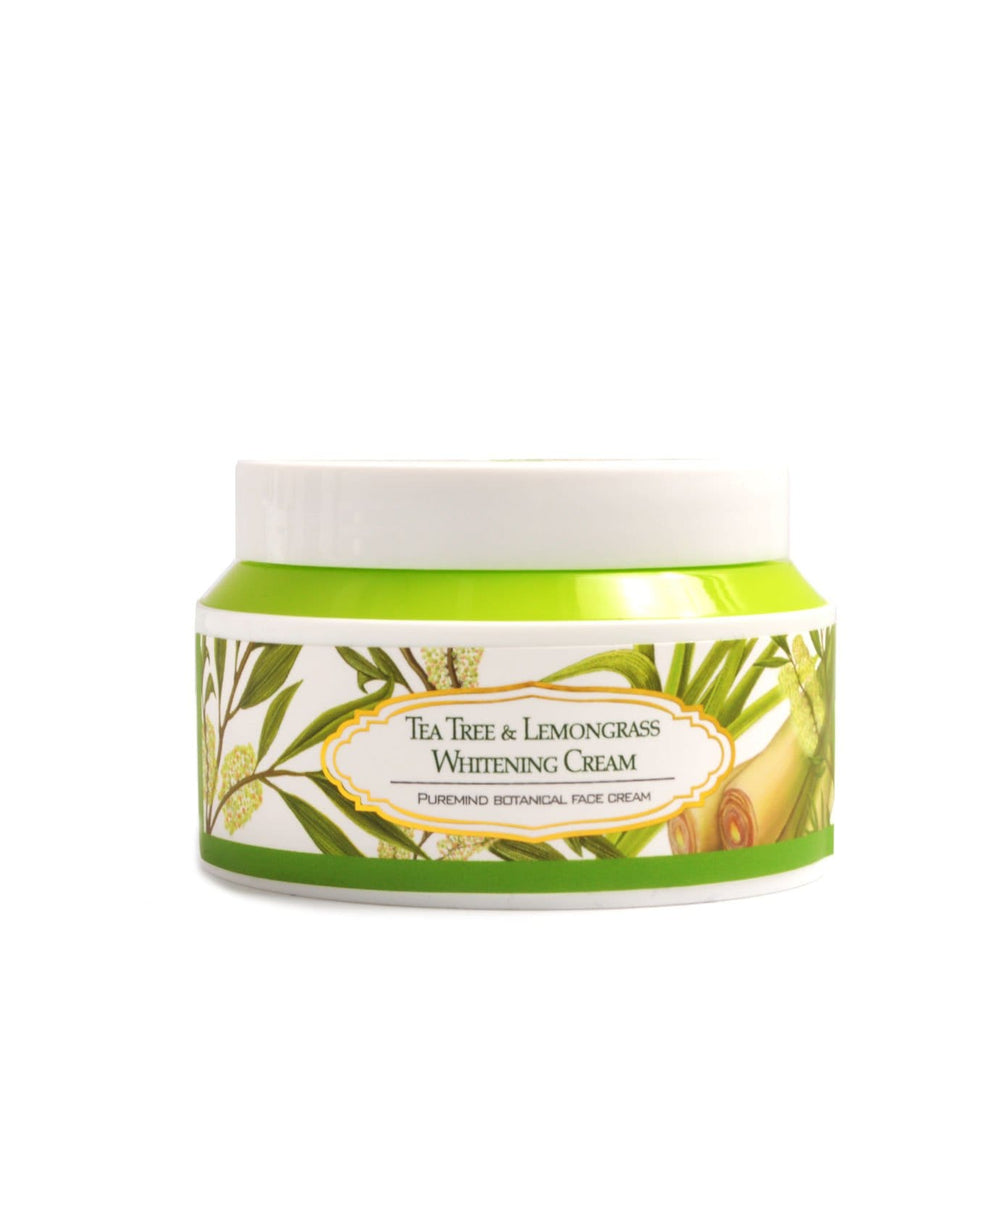 Puremind Tea Tree & Lemongrass Whitening Cream